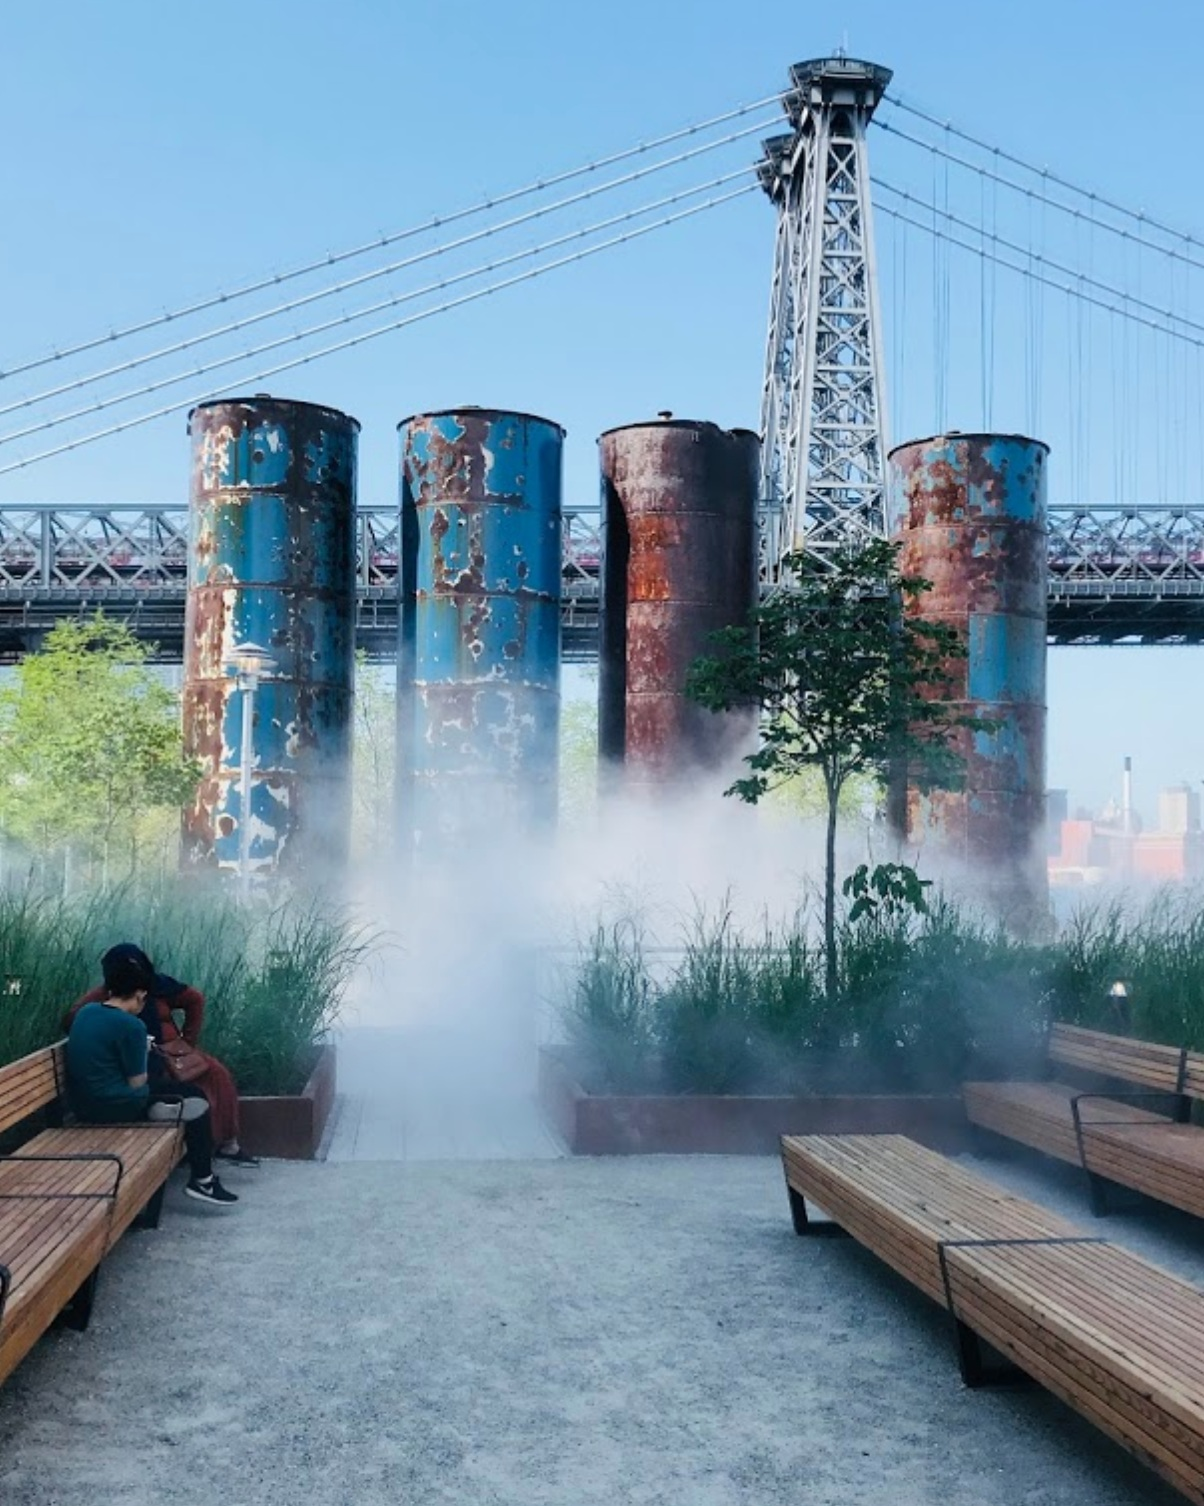 """""""The history of the land itself fascinates me…"""" - """"The Domino Sugar Refinery once produced more sugar than anywhere else in the world. Here at Domino Park, cranes, tanks, and columns that were original to the Refinery are still on site and have been painted or refurbished to match the park's signature aesthetic.""""-Basmajian"""